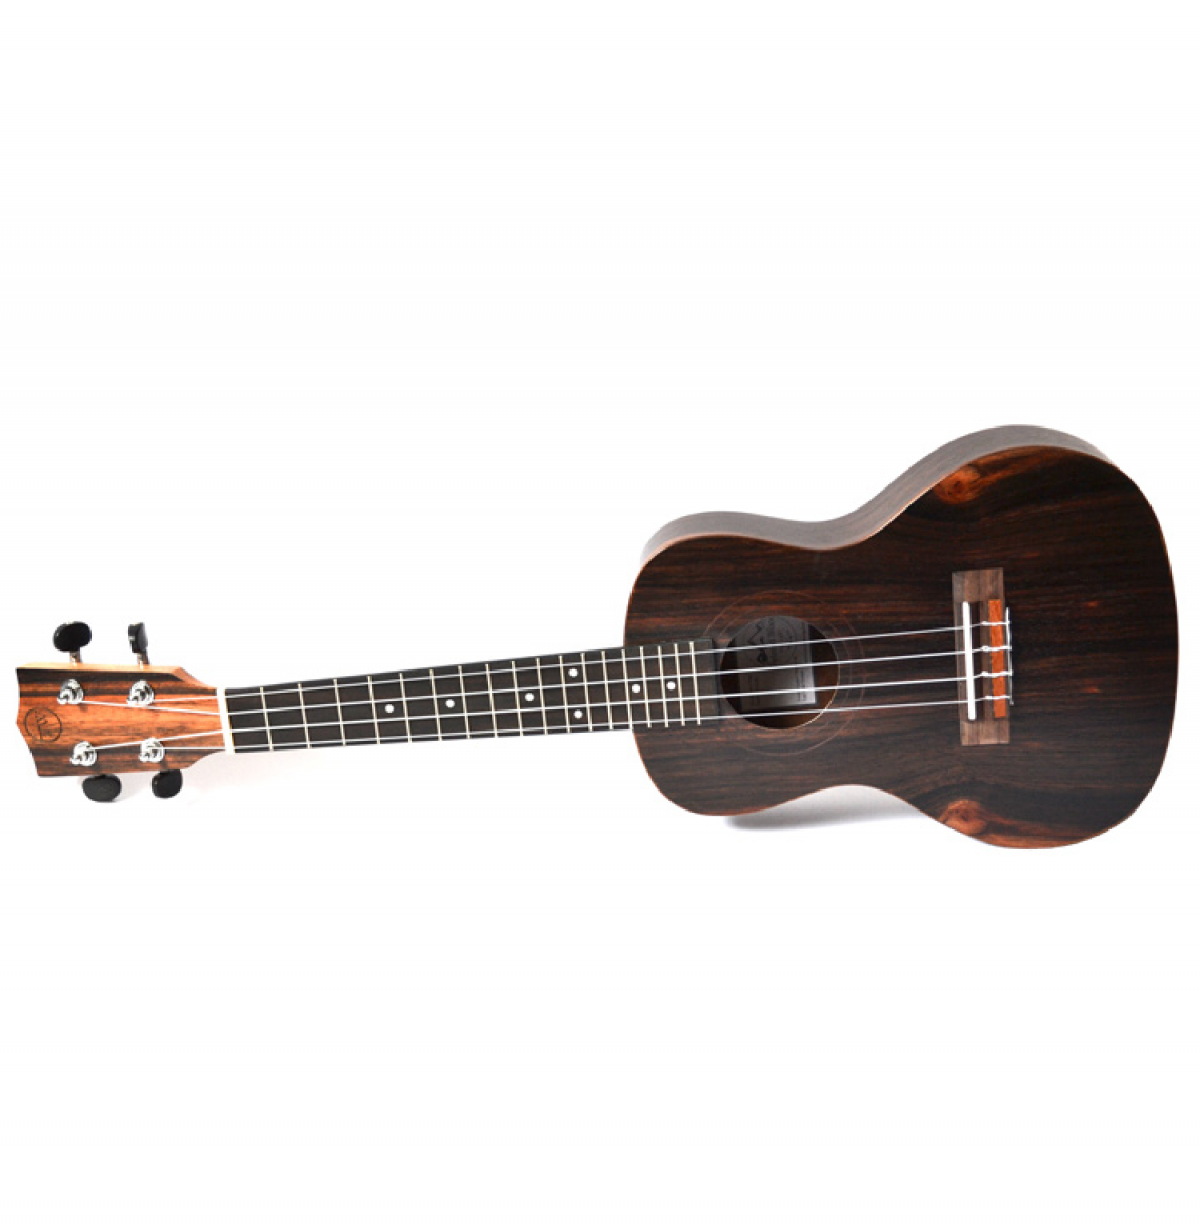 Twisted Wood Dorado Tenor Ukulele - DO300T down